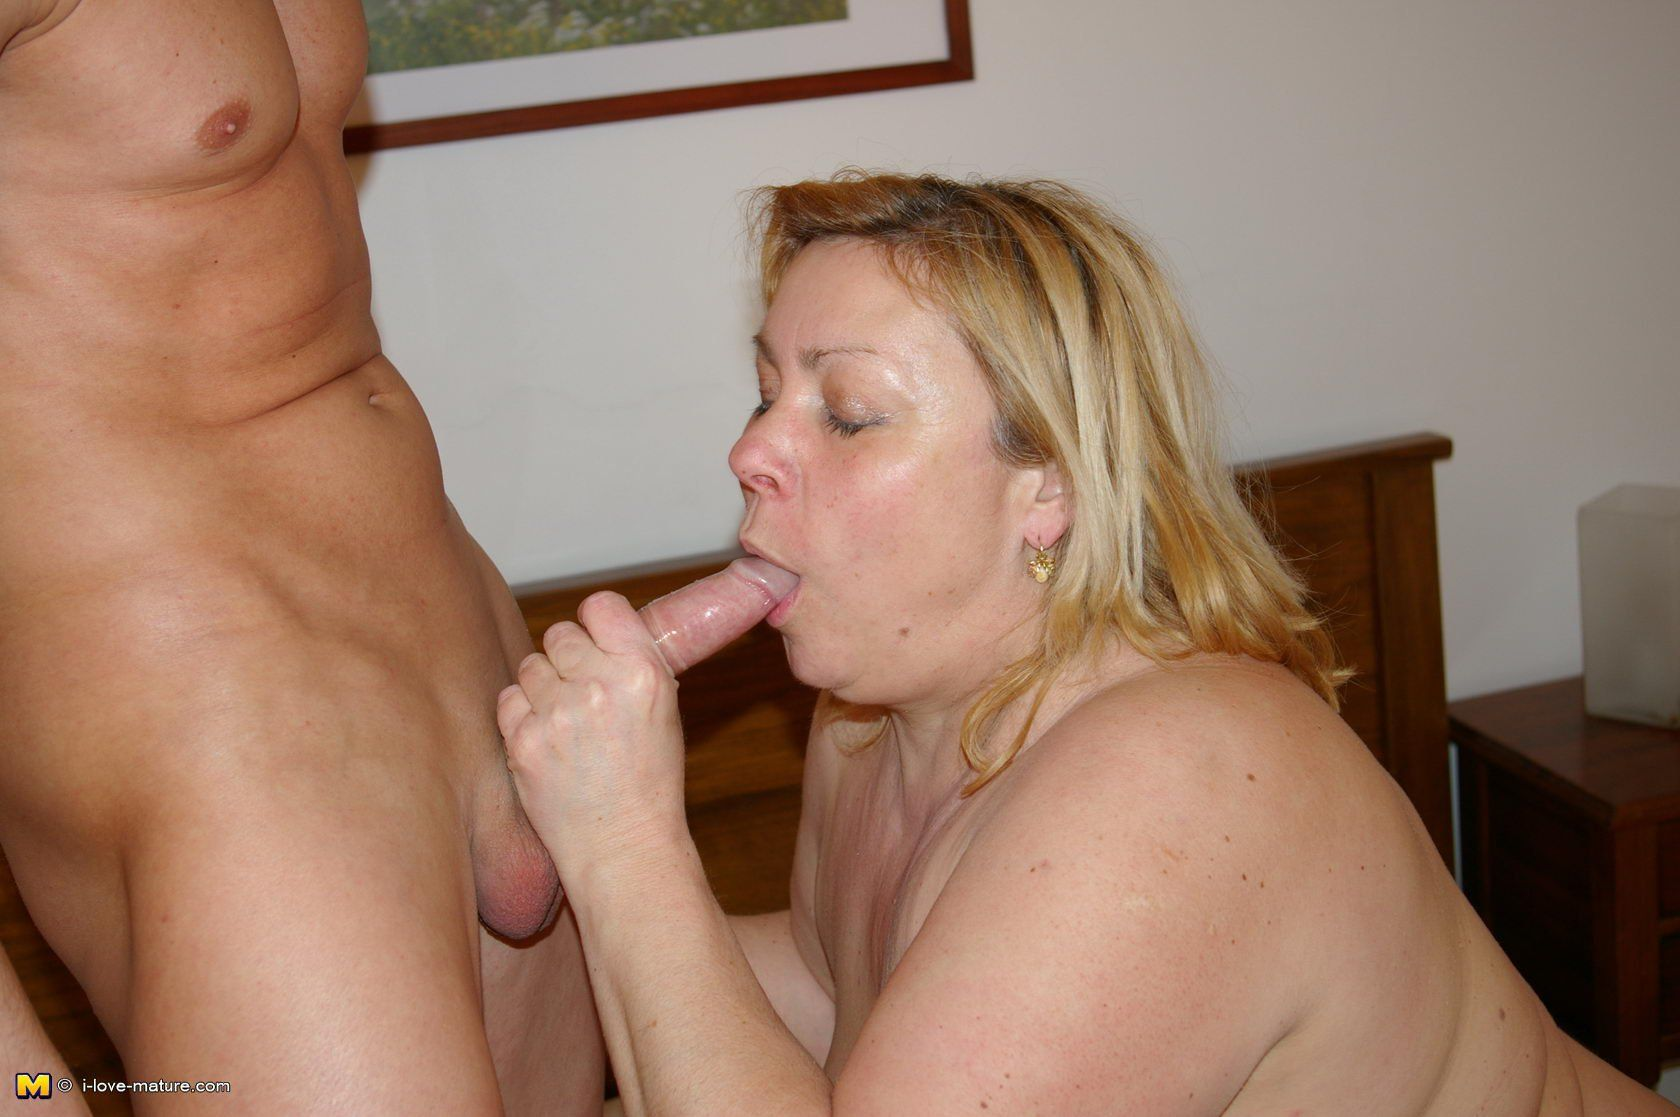 Hot Nude old woman giving blow job